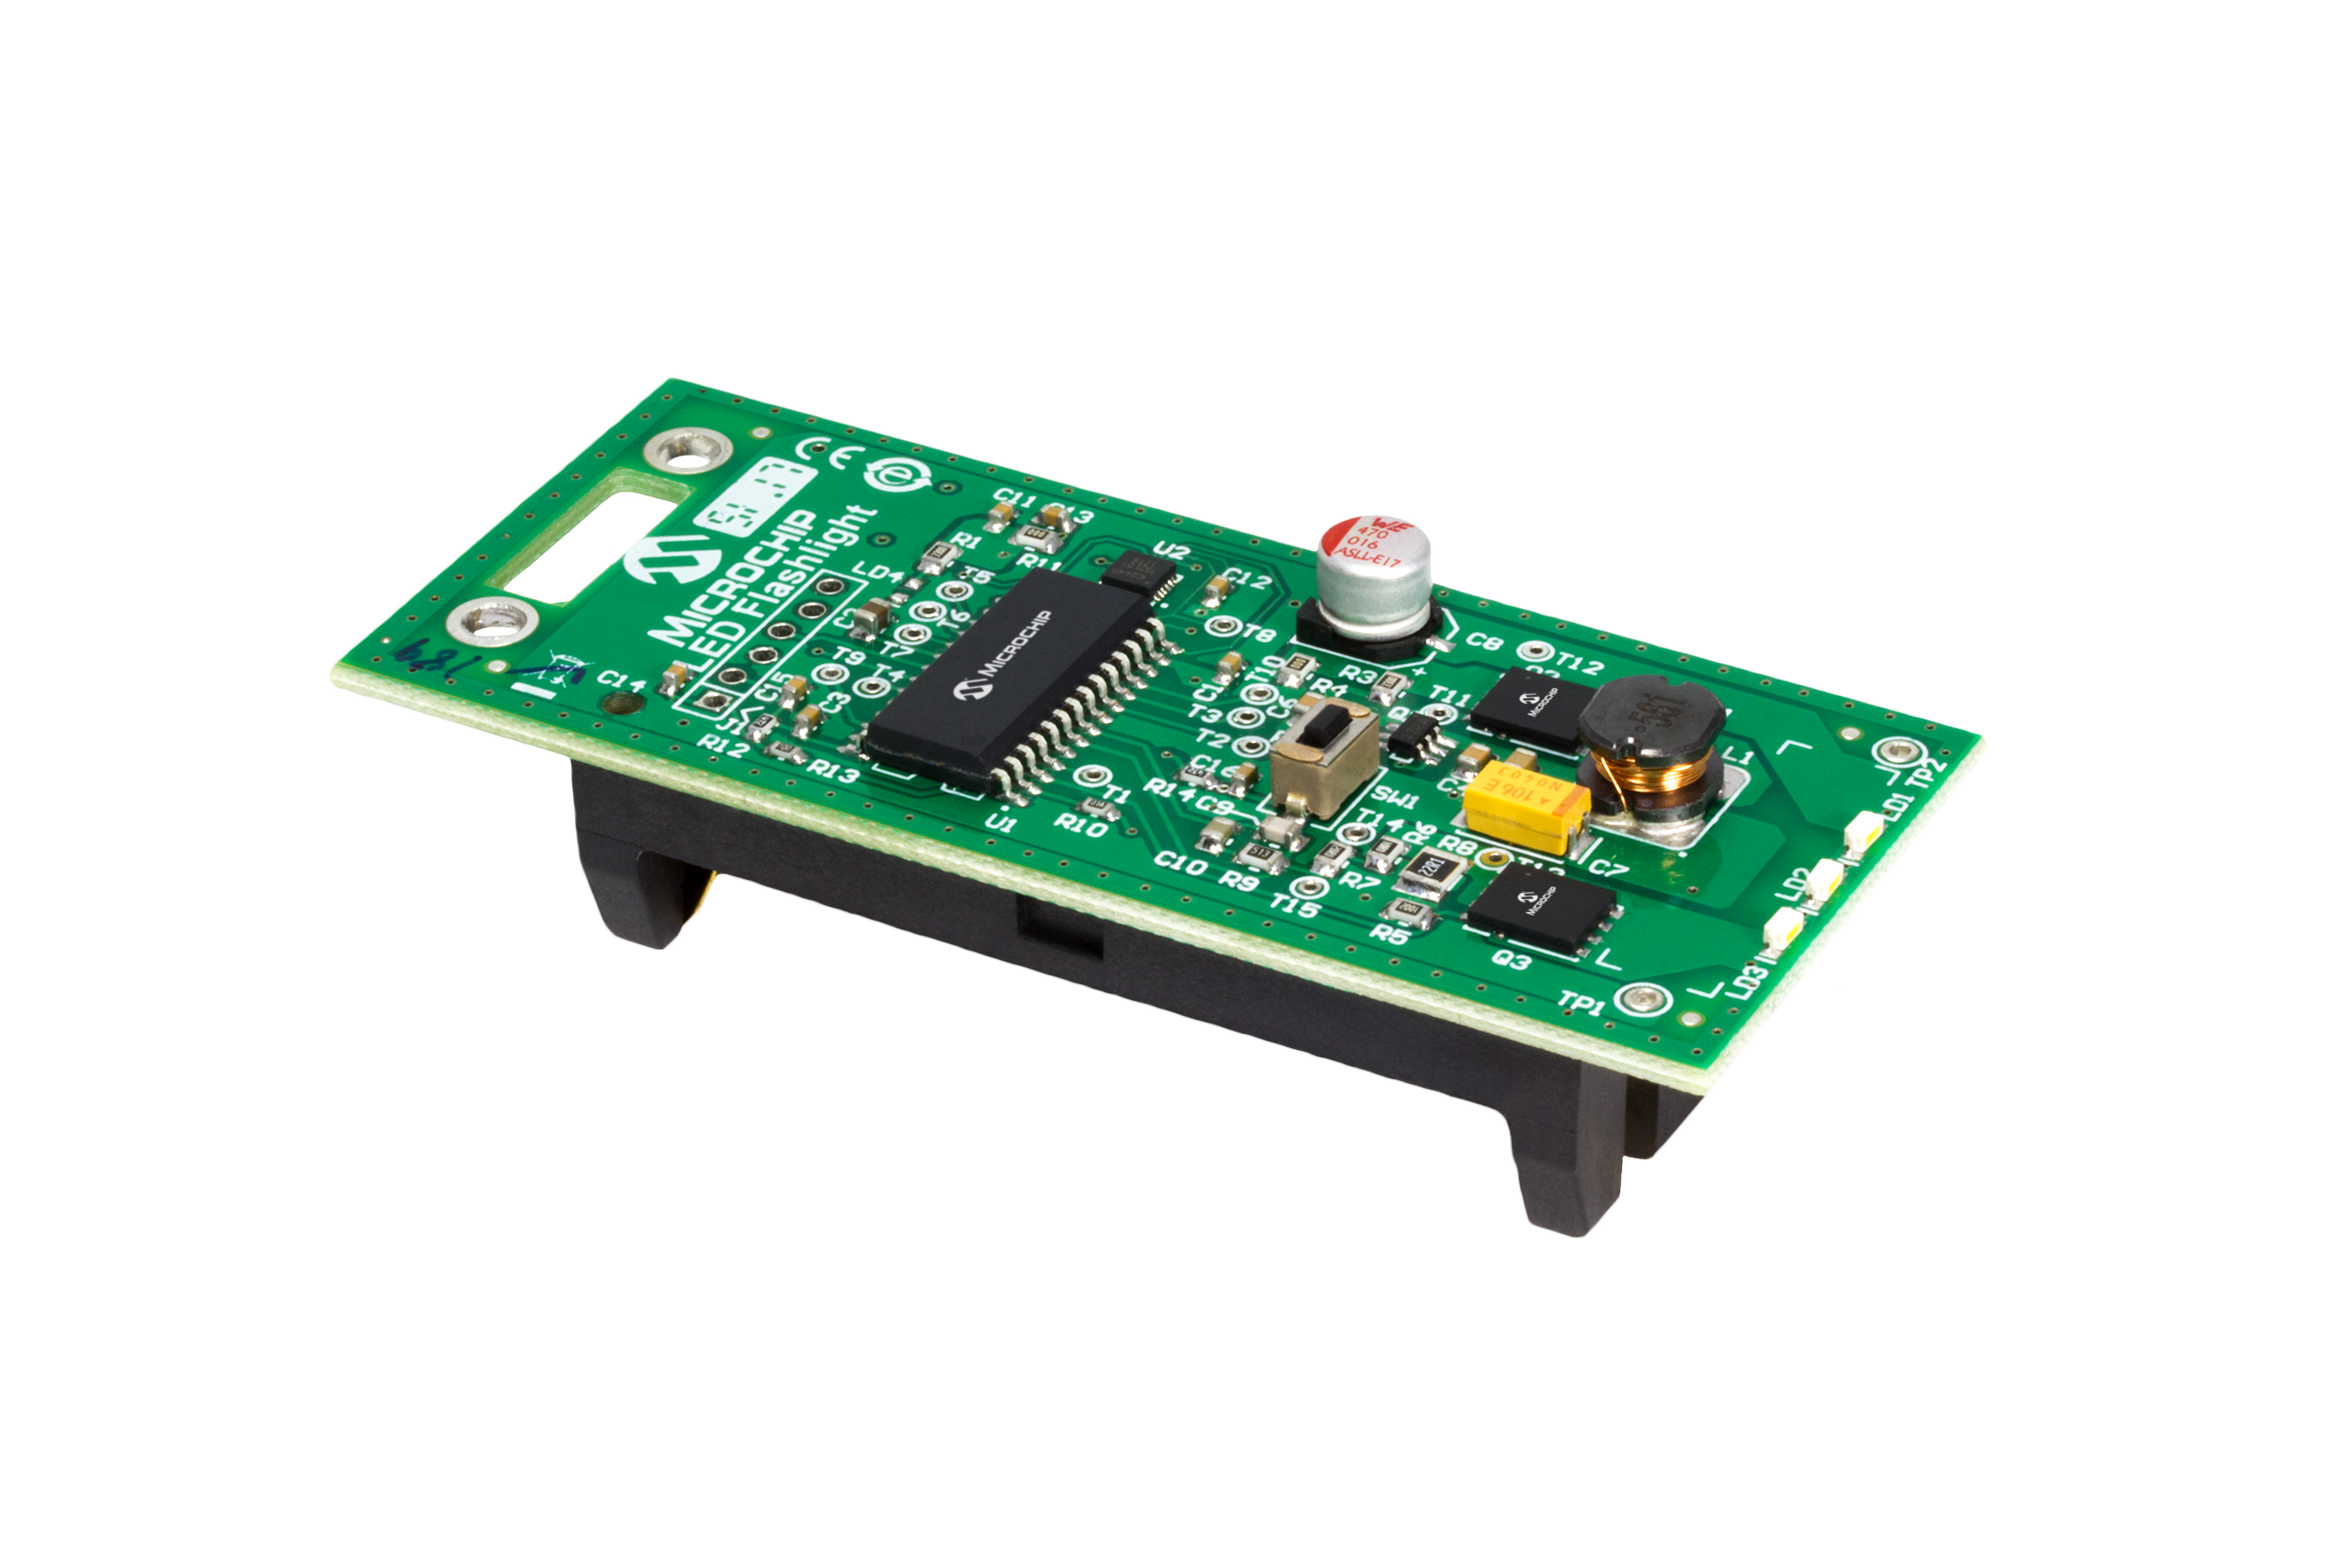 Development Tools Pcb Led Circuit Beginner Seeks Help Electrical Engineering Stack Today Lighting Meets The Need For Energy Efficient Solutions And Is Well Poised A Varied Number Of General Purpose Industrial